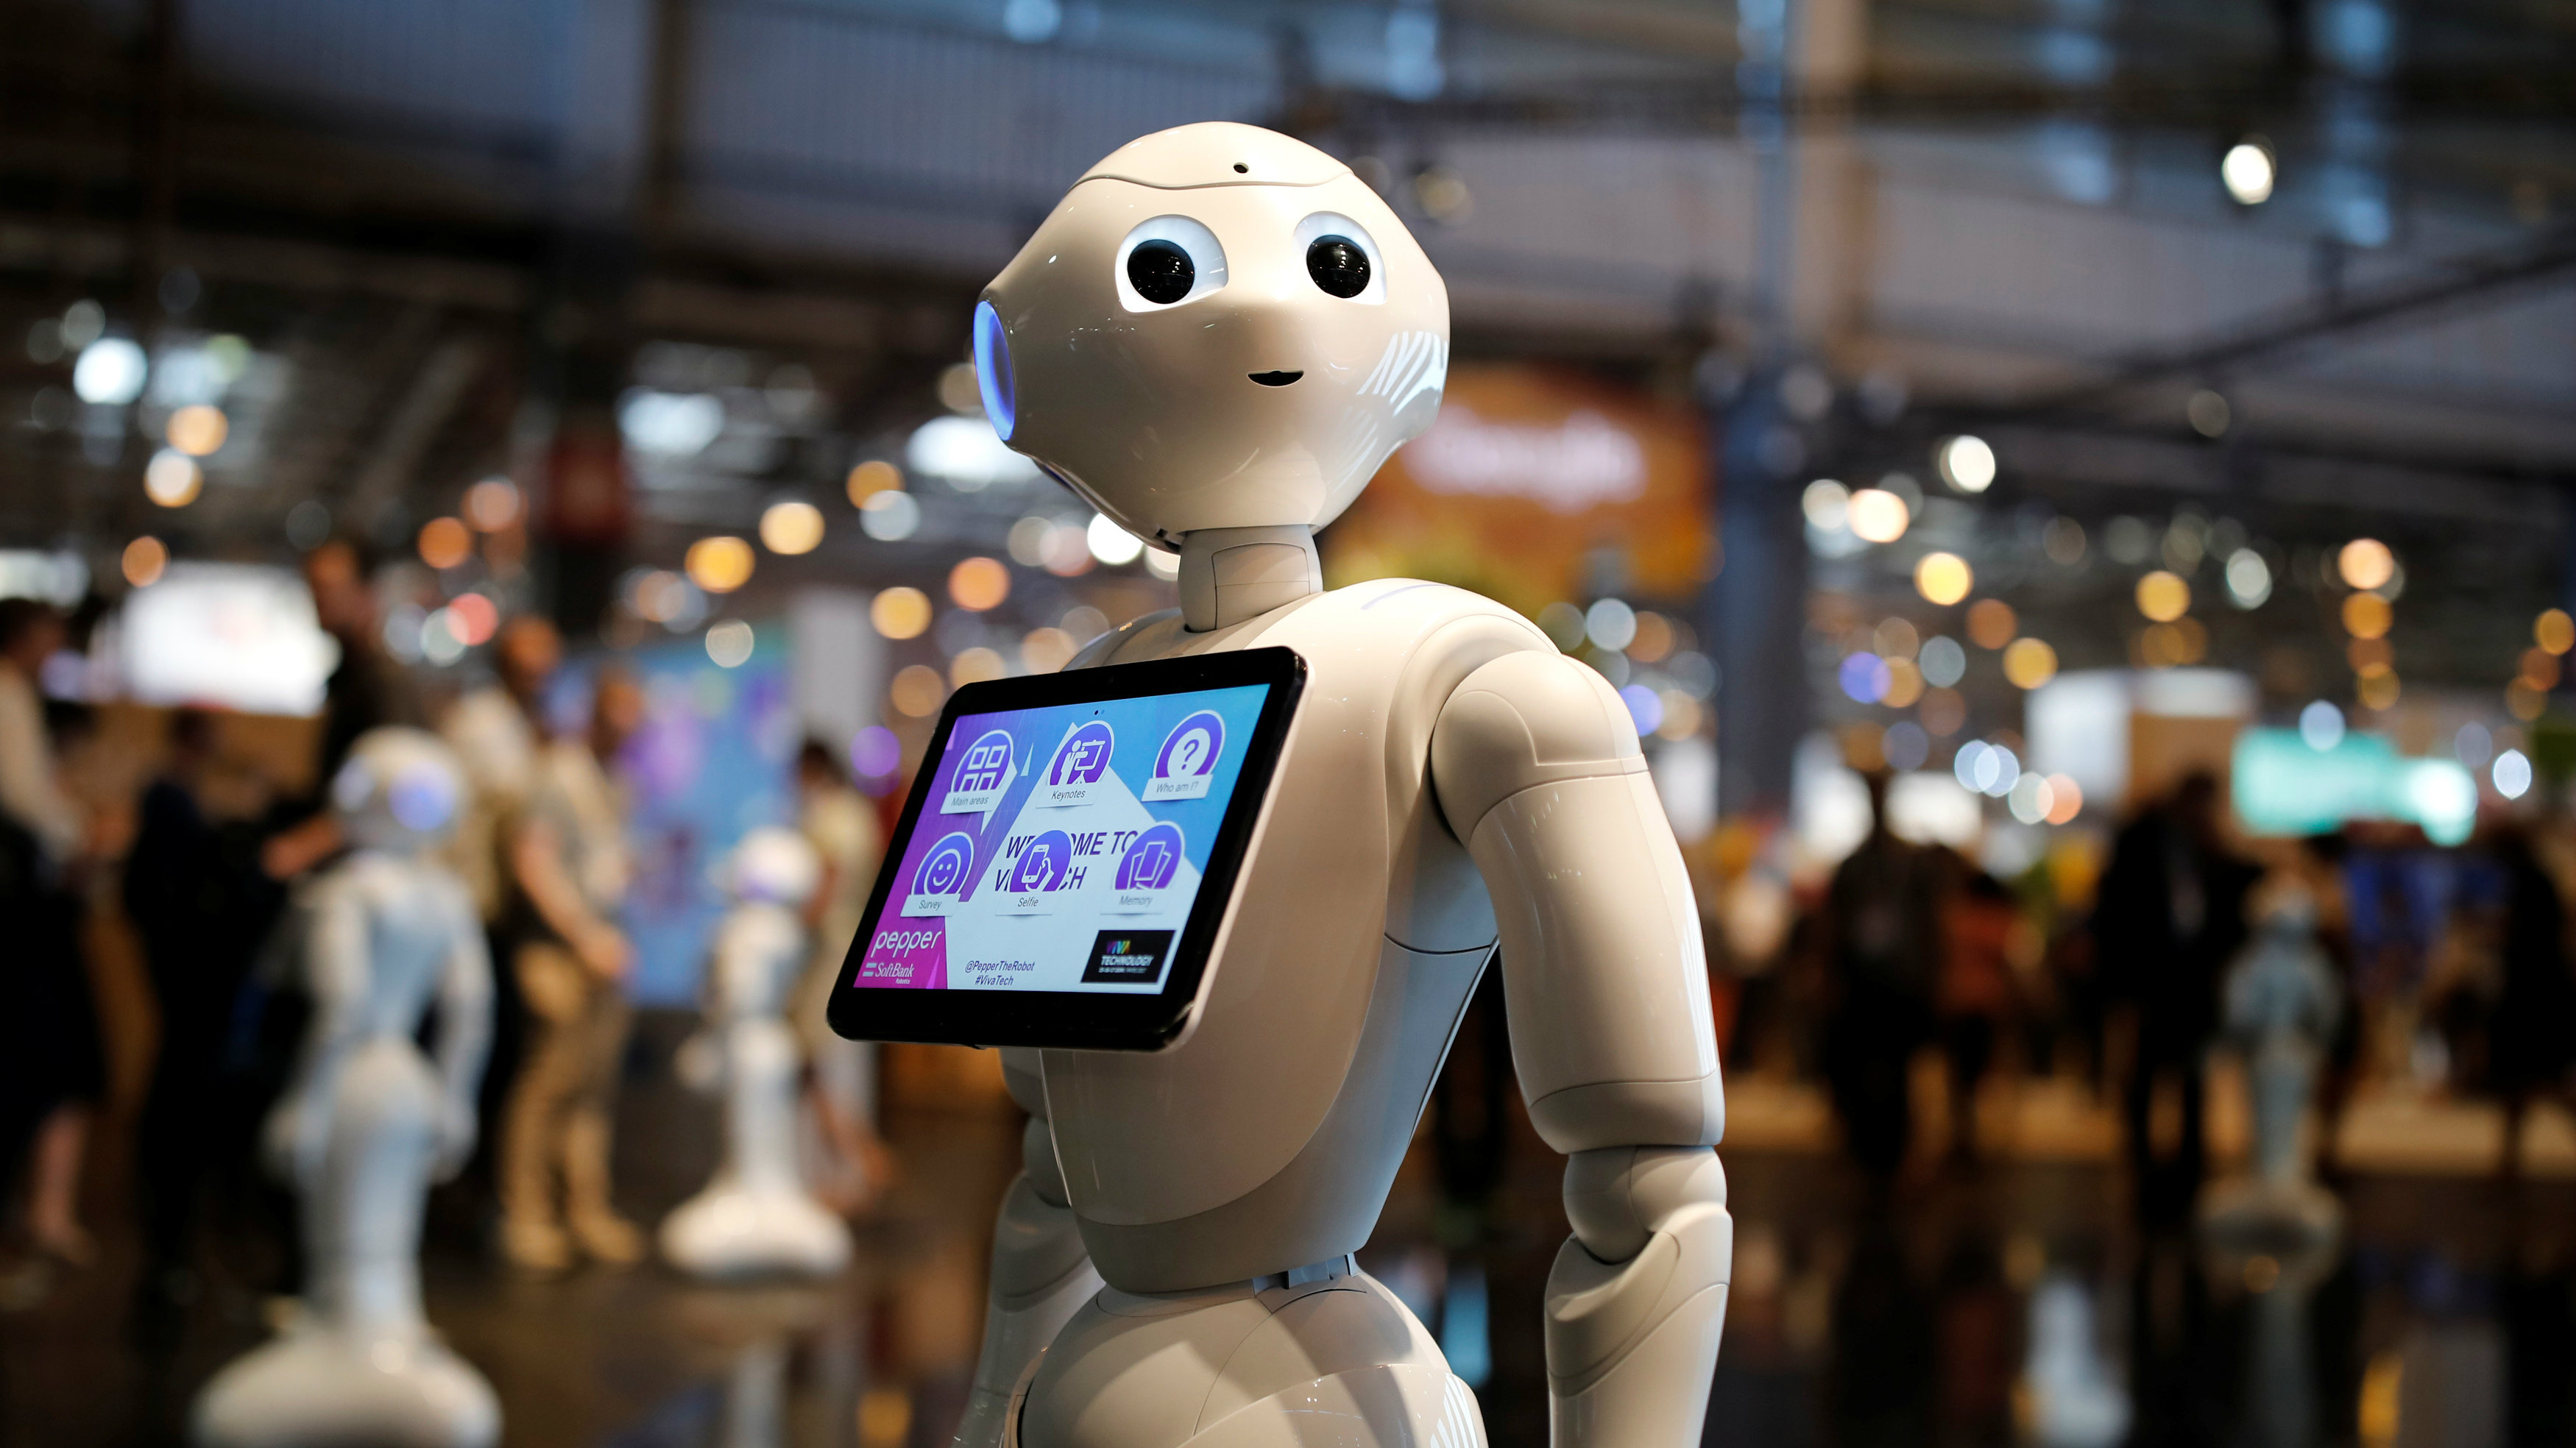 A 'Pepper' humanoid robot, manufactured by SoftBank Group Corp., stands at the Viva Technology conference in Paris, France, June 15, 2017.